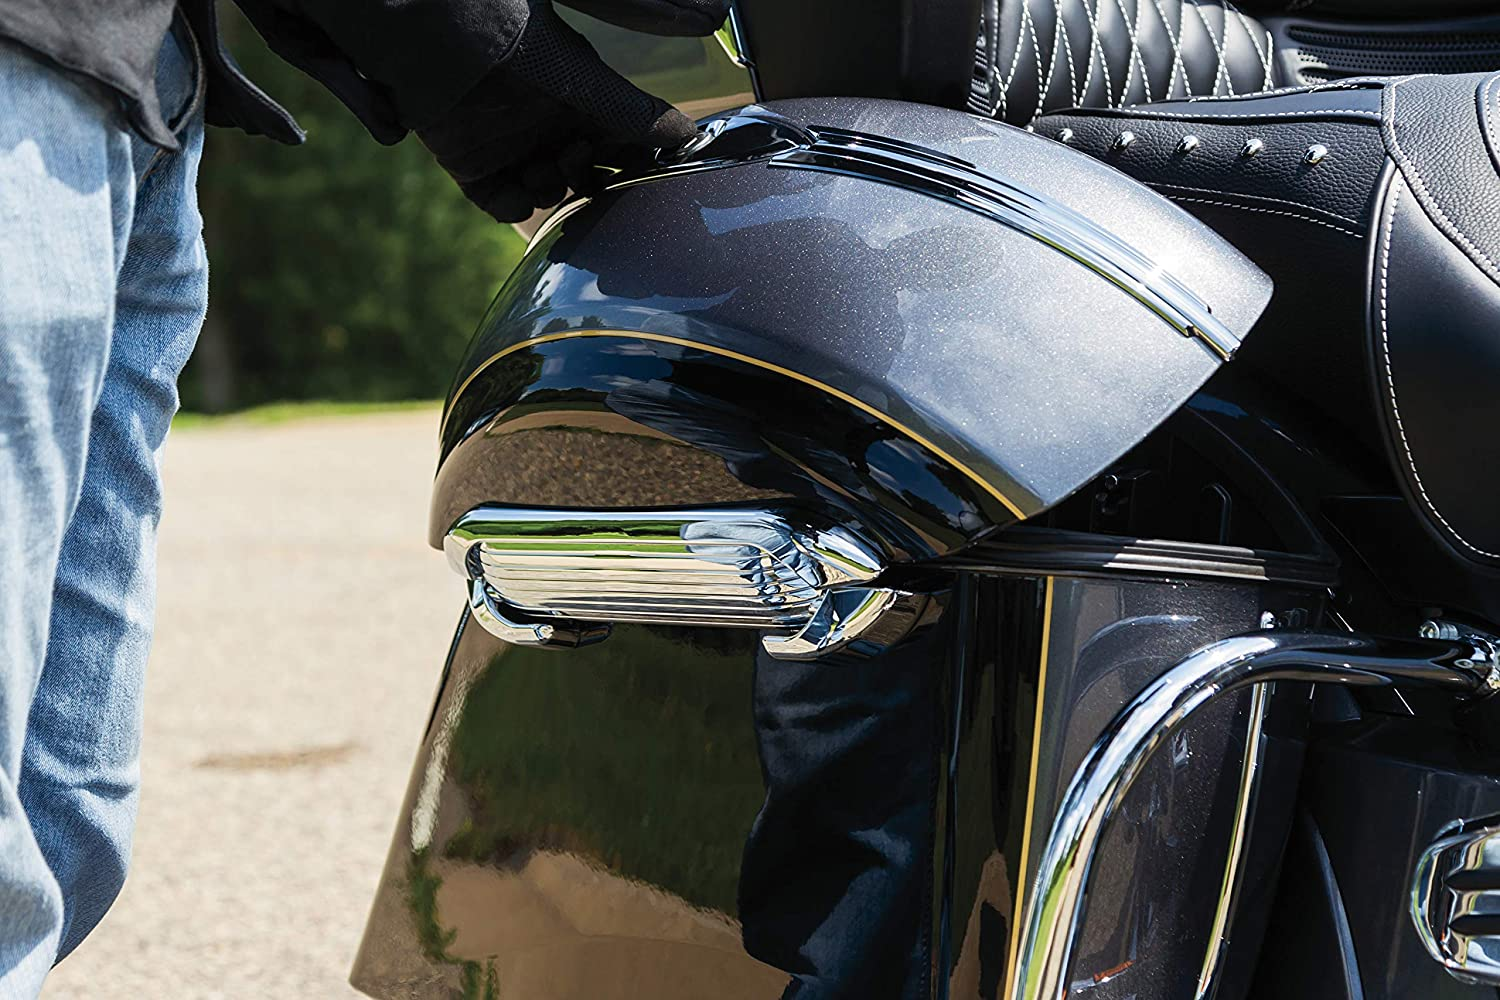 1 Pair Bolt-On Replacement Aluminum Saddlebag Hinges for 2014-19 Indian Motorcycles Satin Black Kuryakyn 5189 Motorcycle Accessory